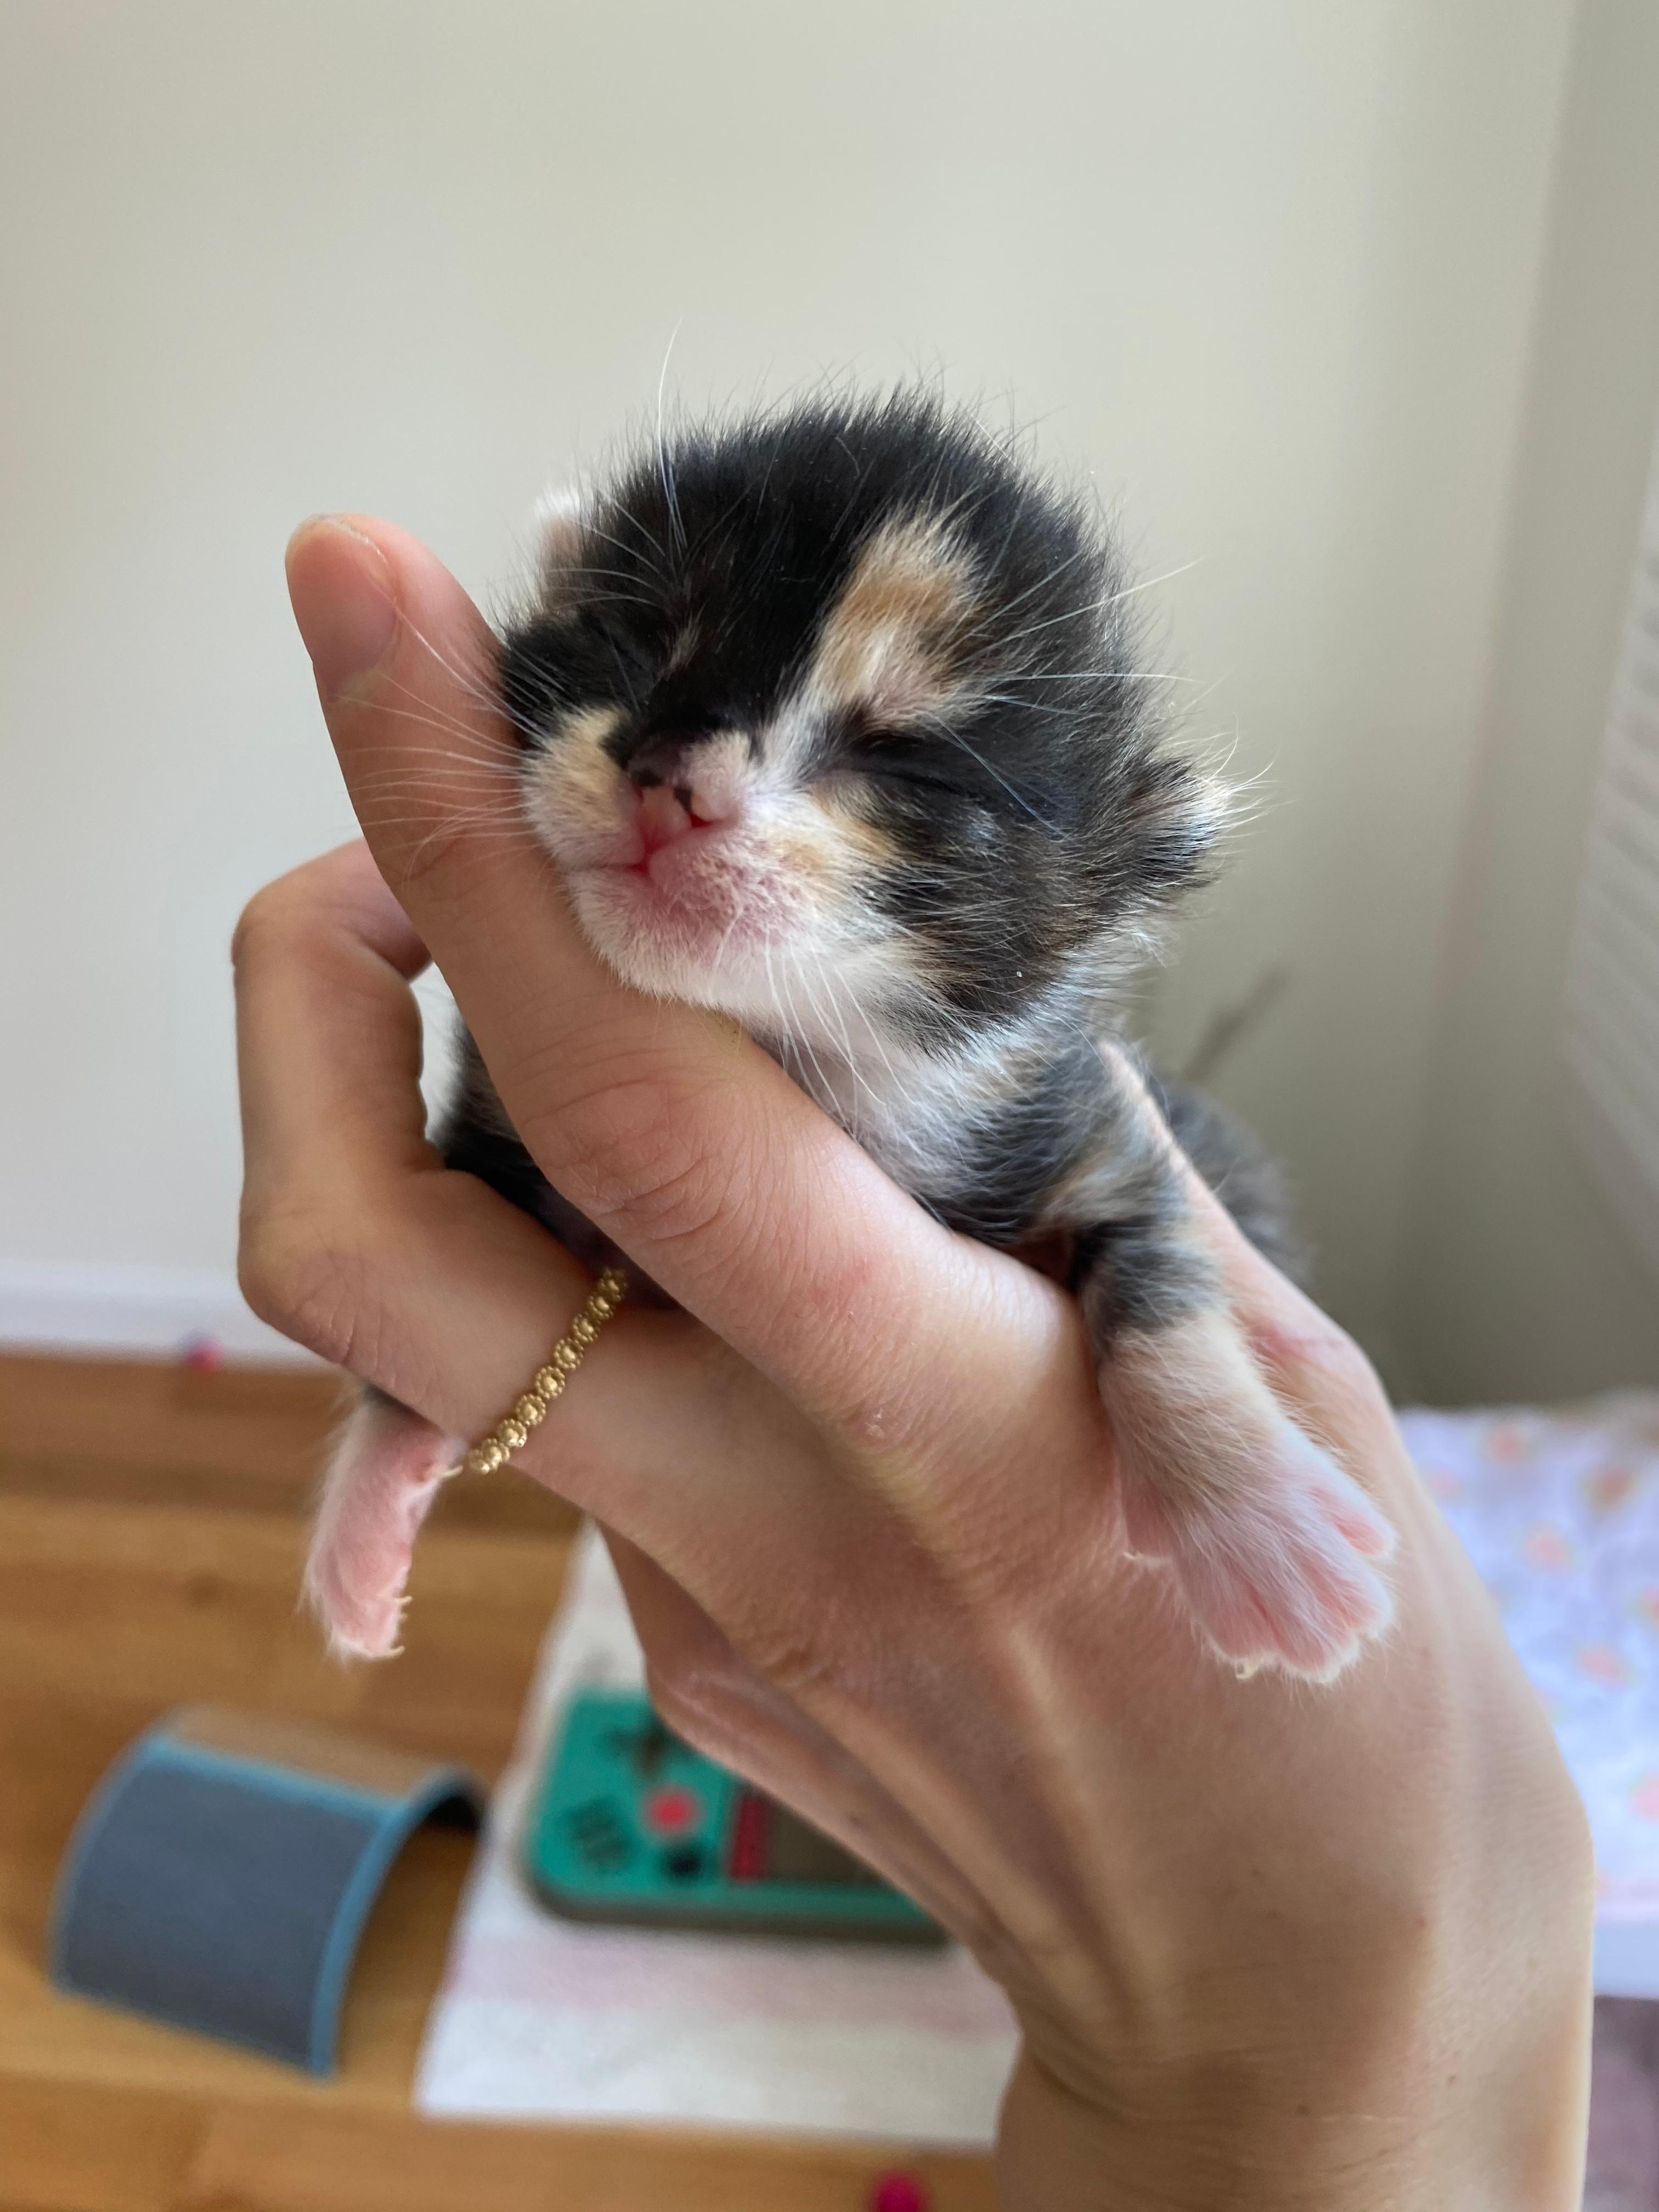 kitten being cradled in a person's hand